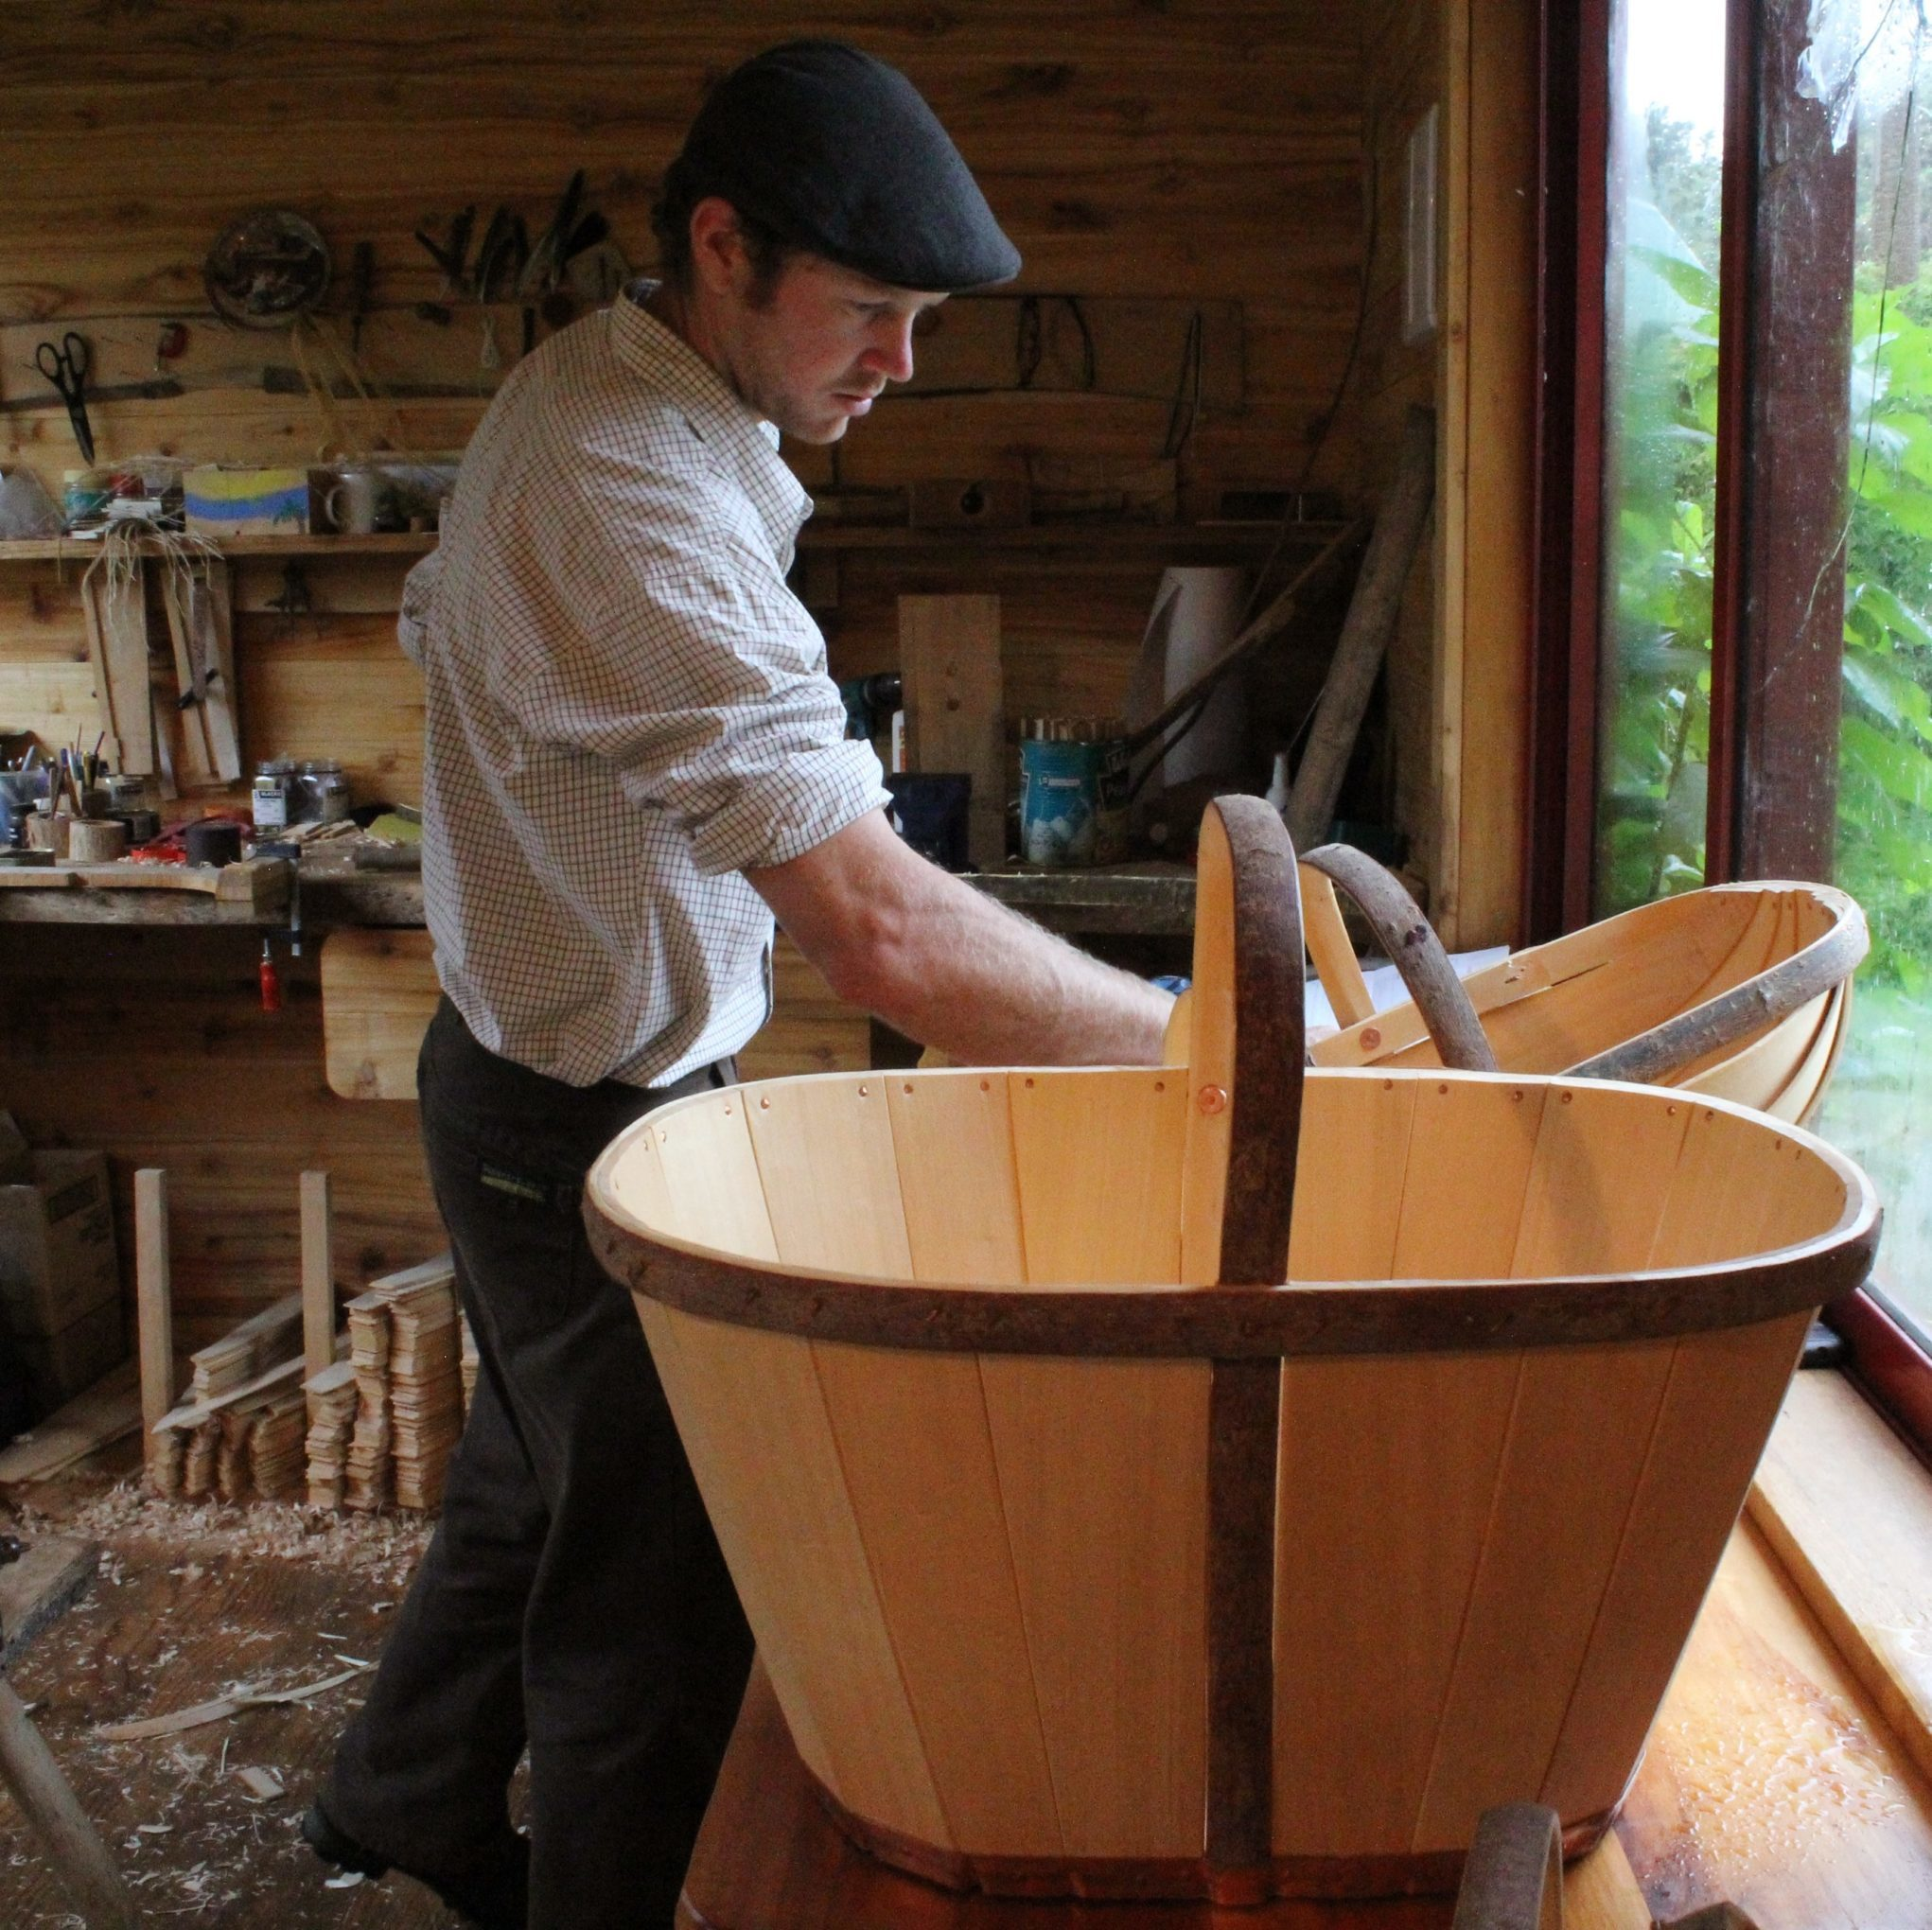 Tony in his workshop with a trug in the foreground